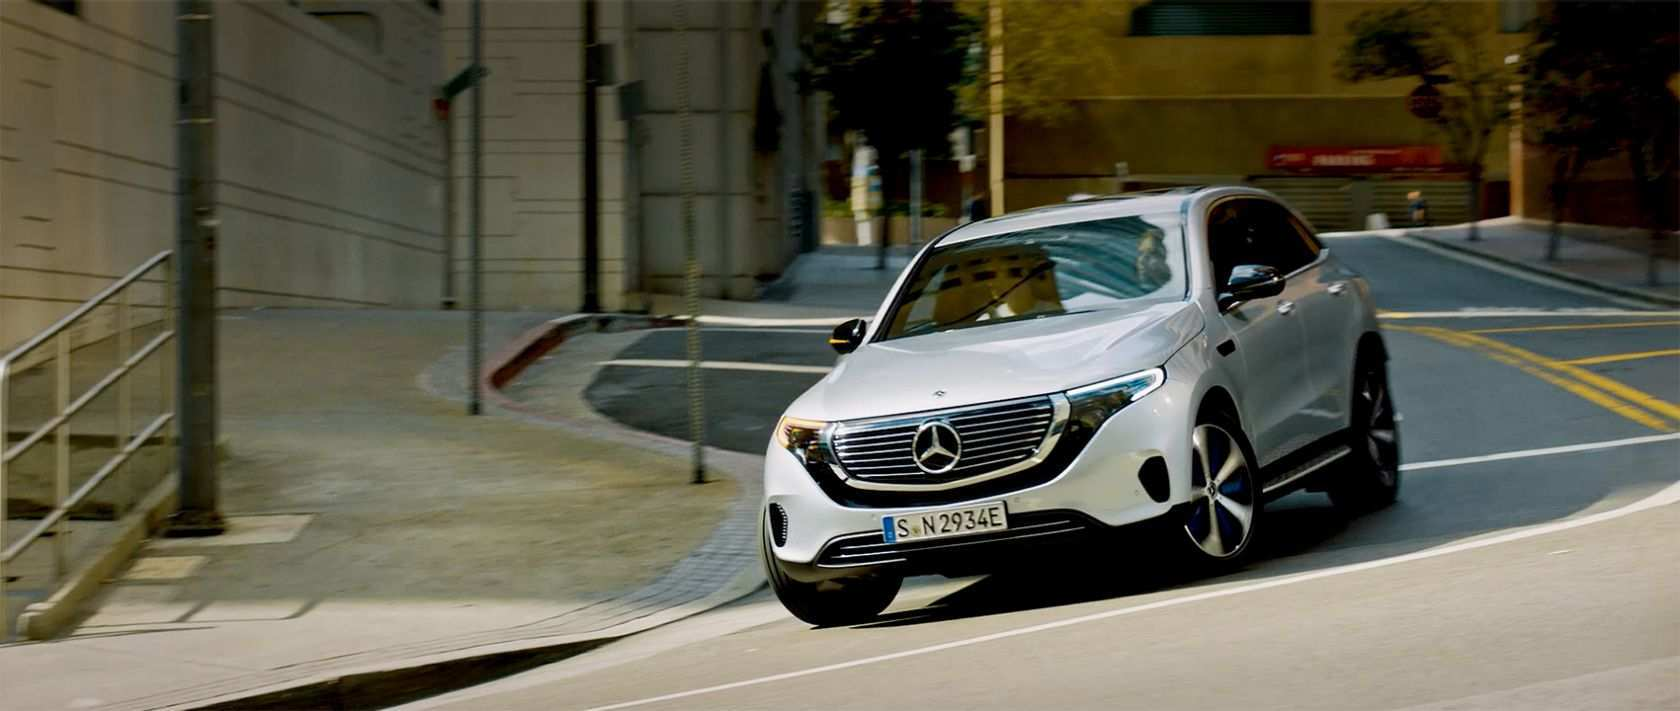 63 The Best Eqc Mercedes 2019 Prices